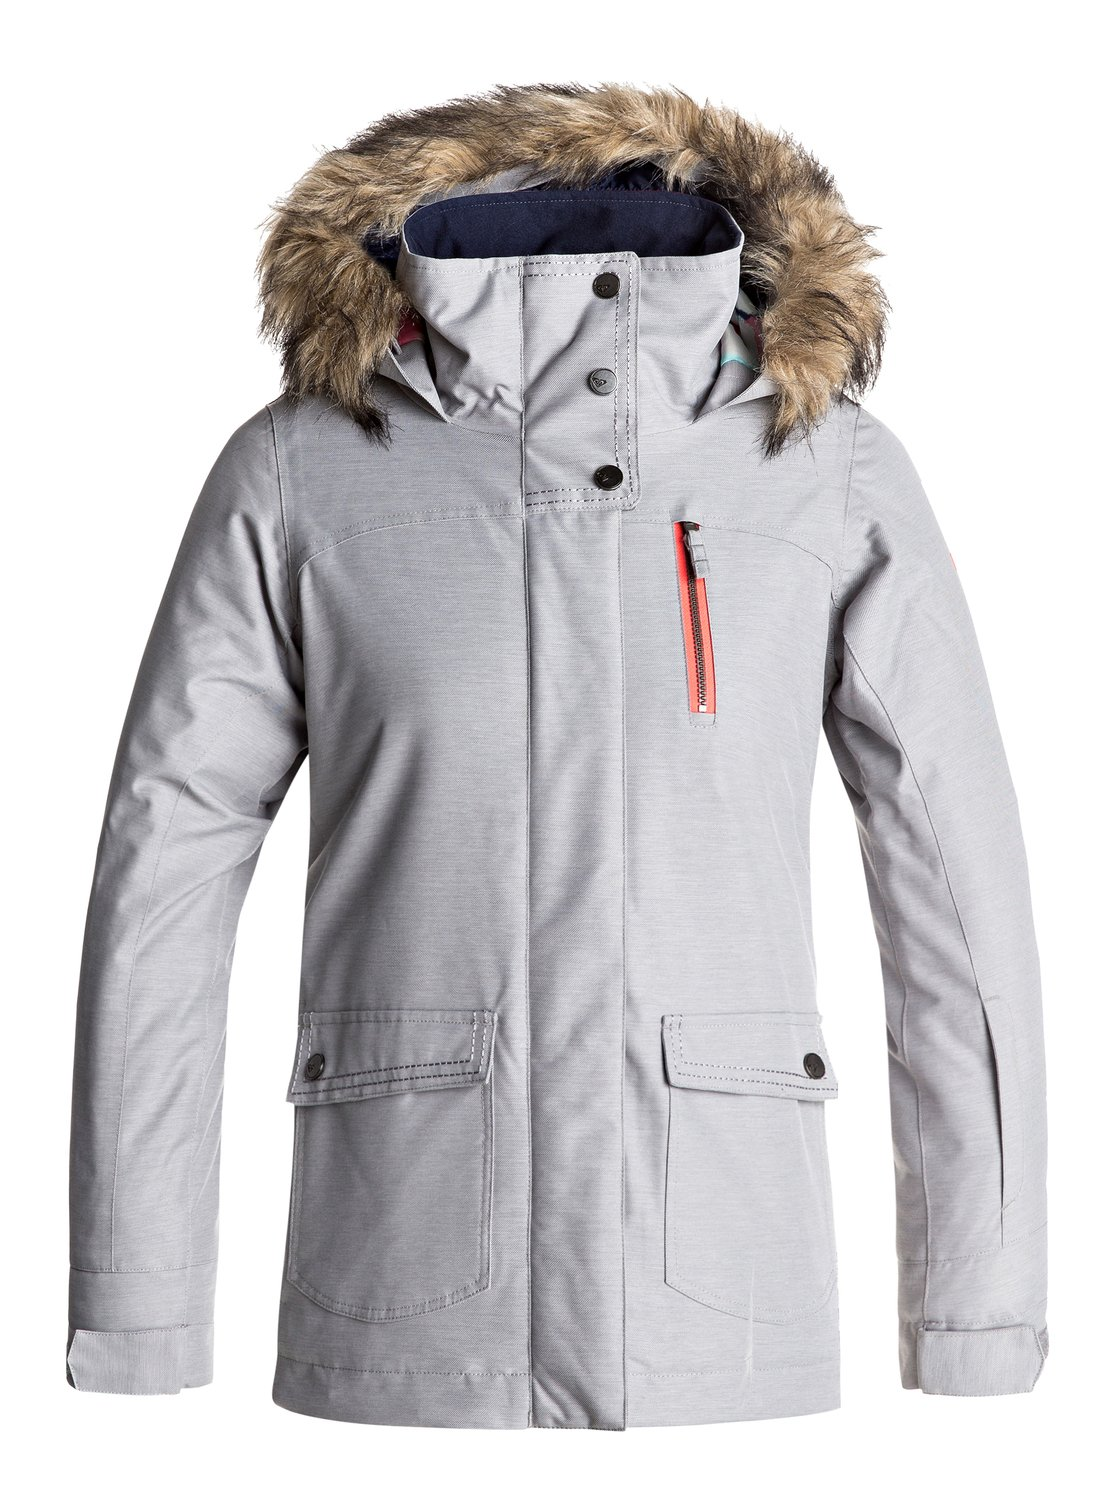 Tribe - Veste de snow pour Fille - Roxy